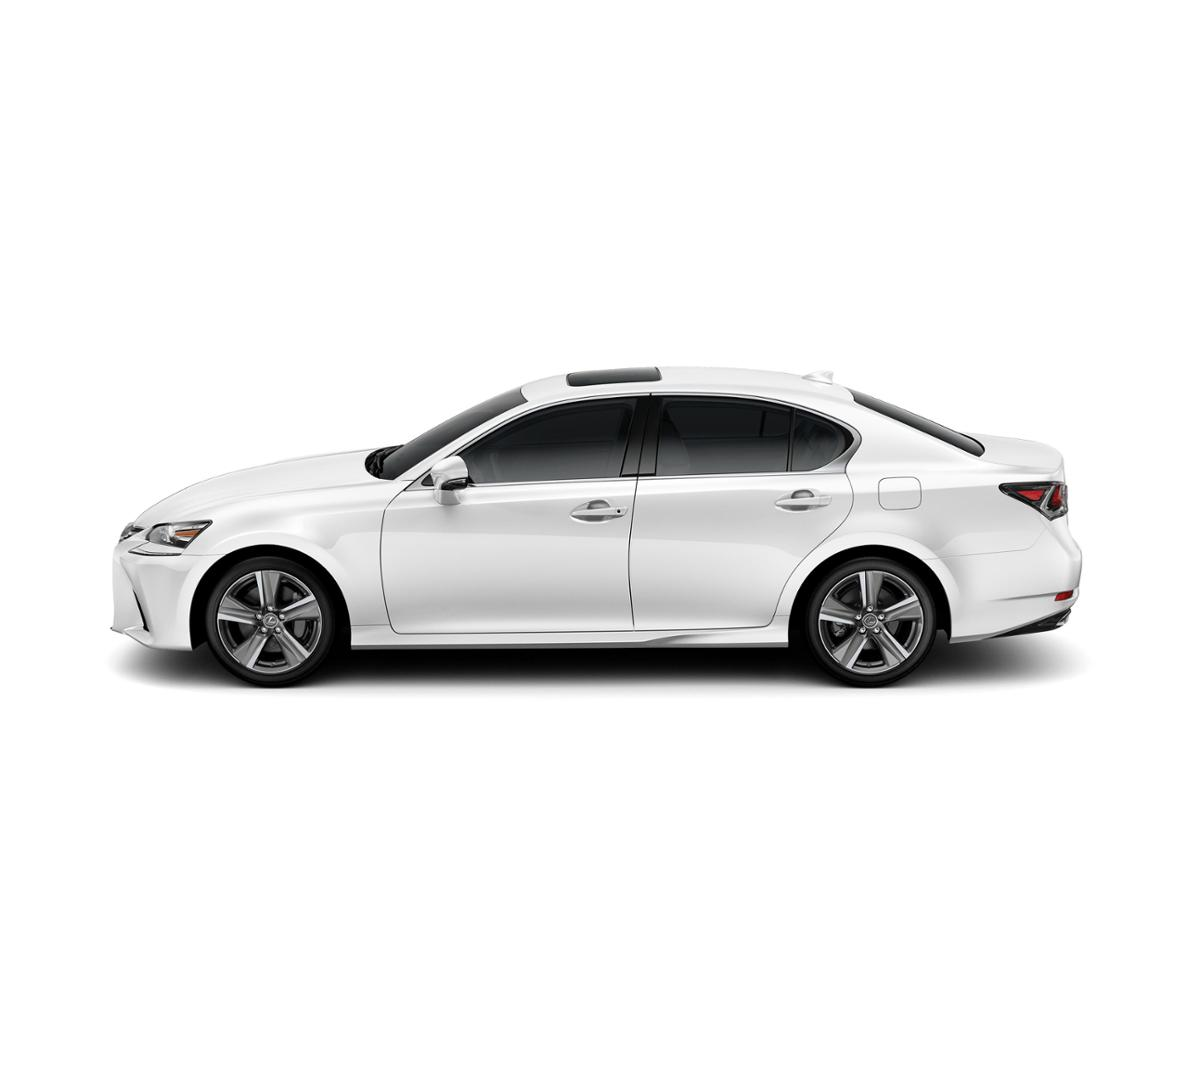 New Eminent White Pearl 2019 Lexus GS 350 In West Palm